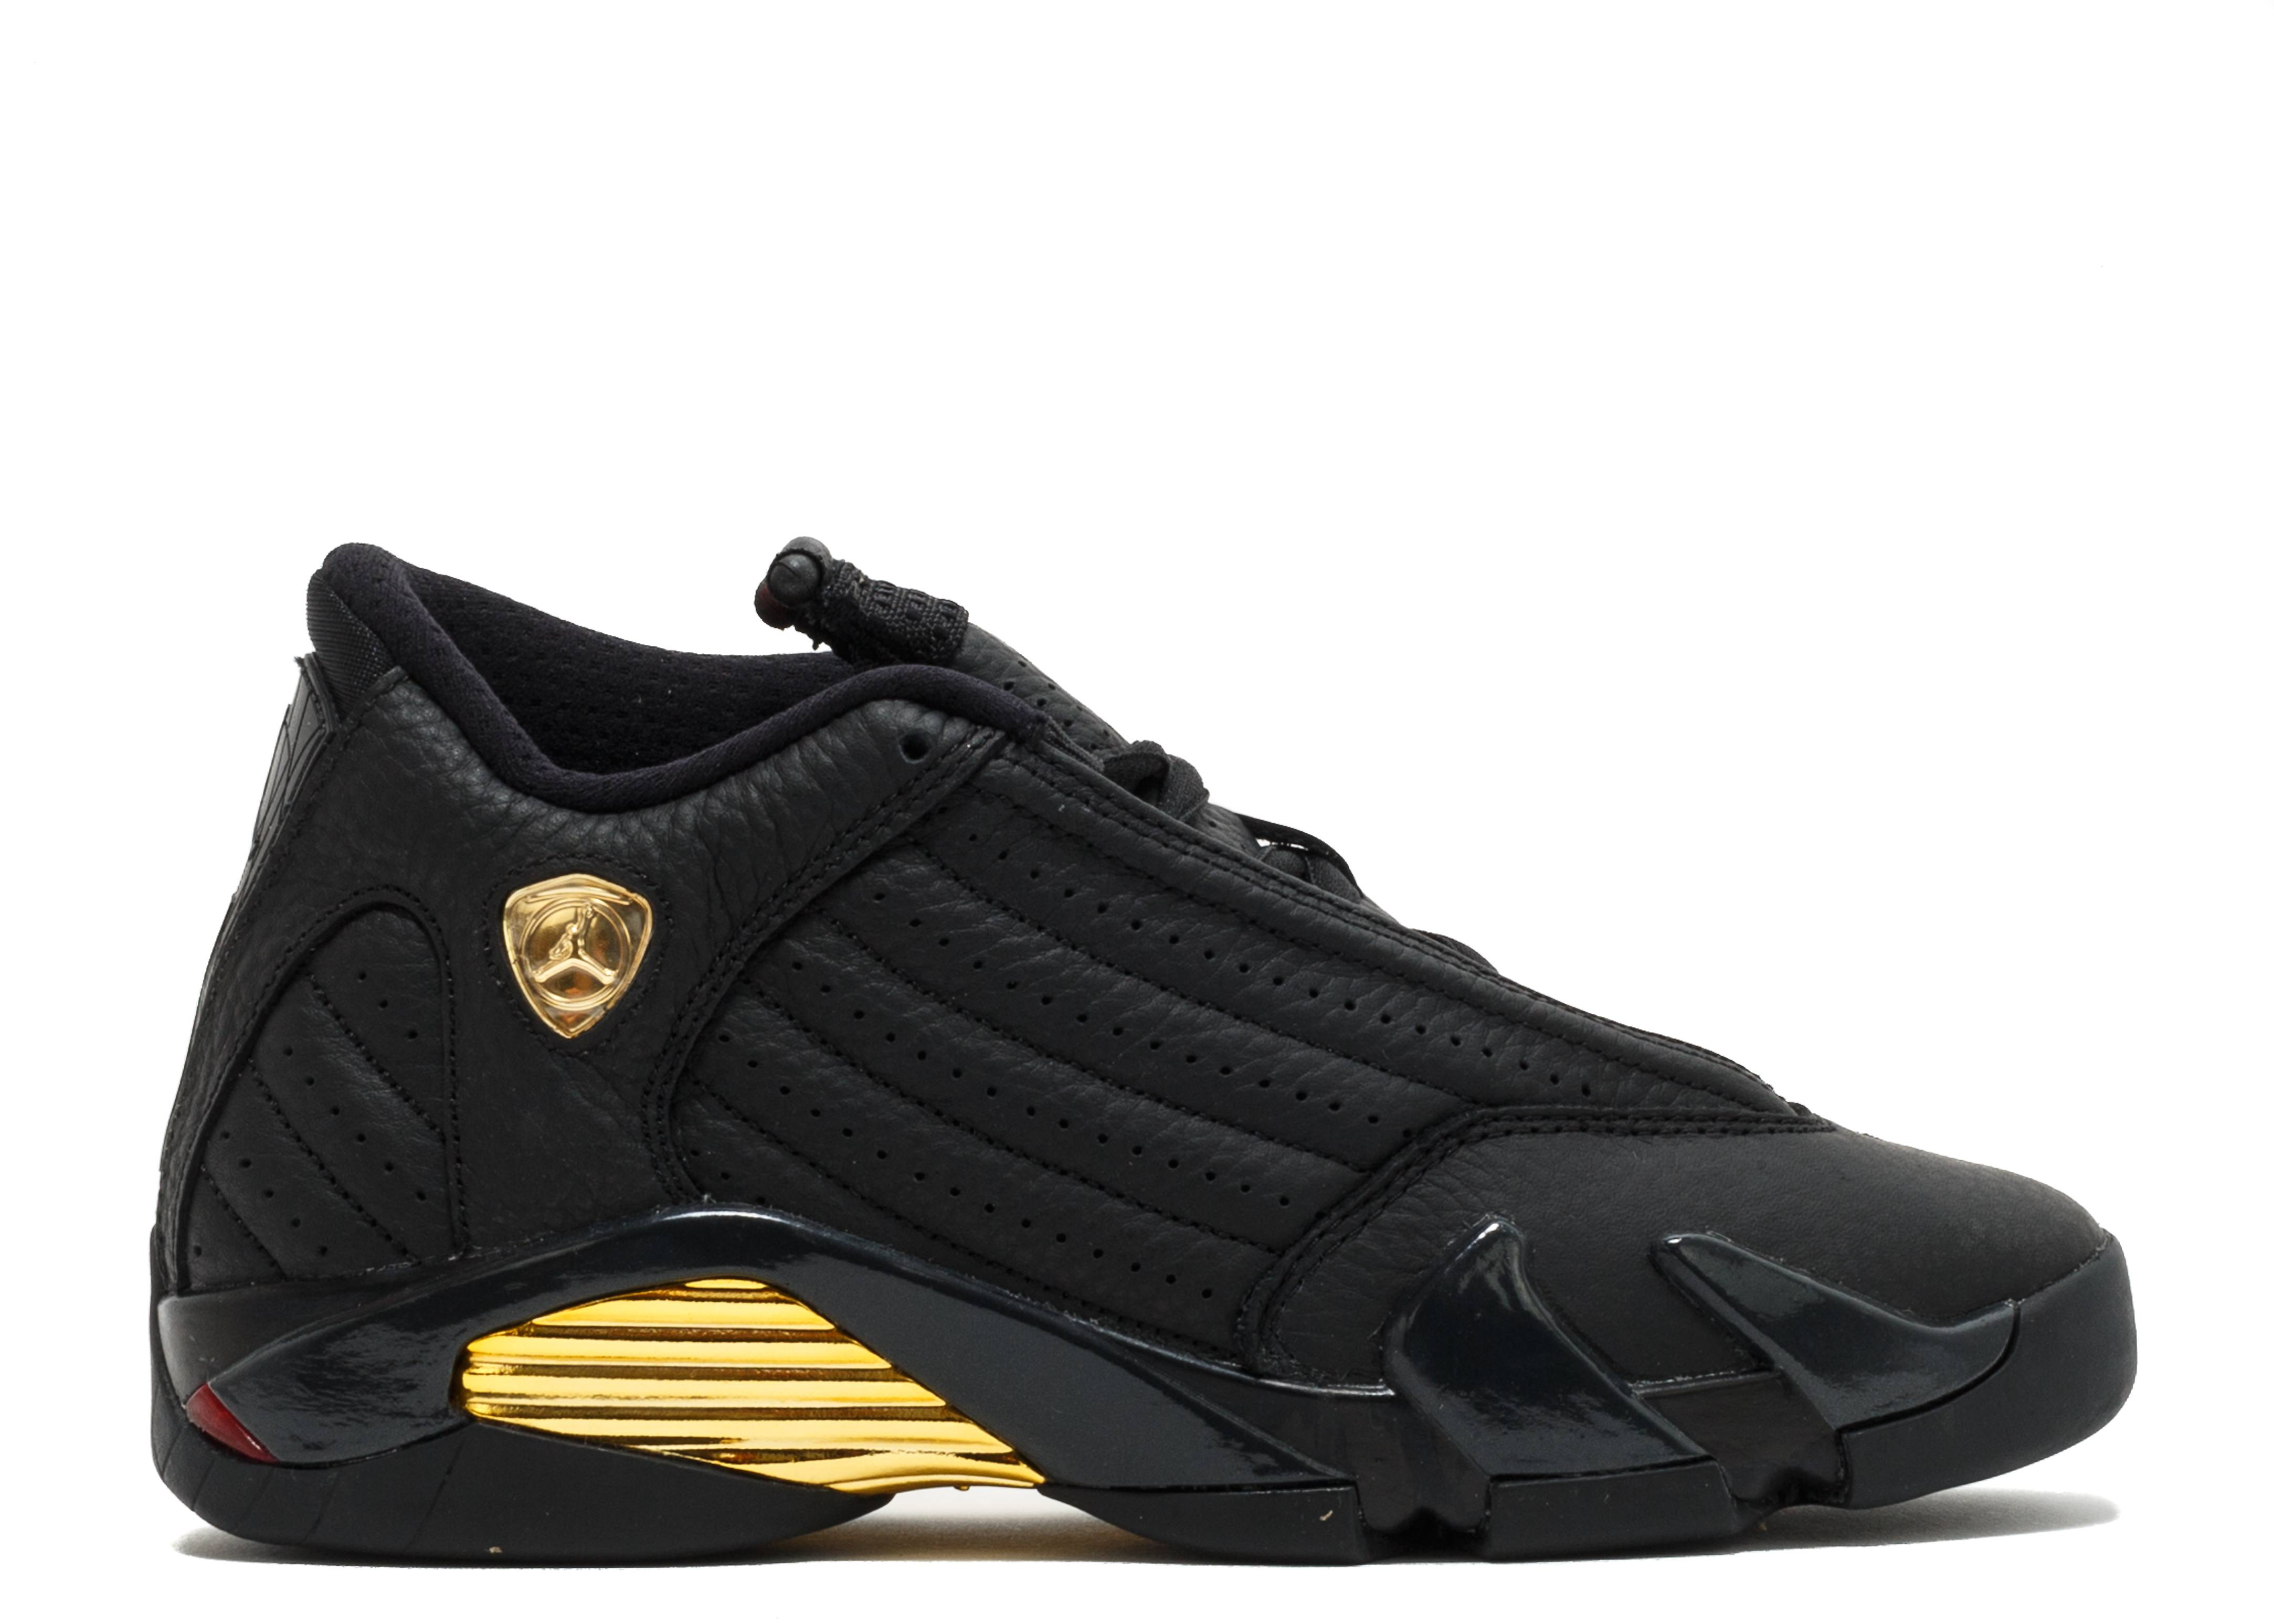 Air Jordan 14 Retro BG